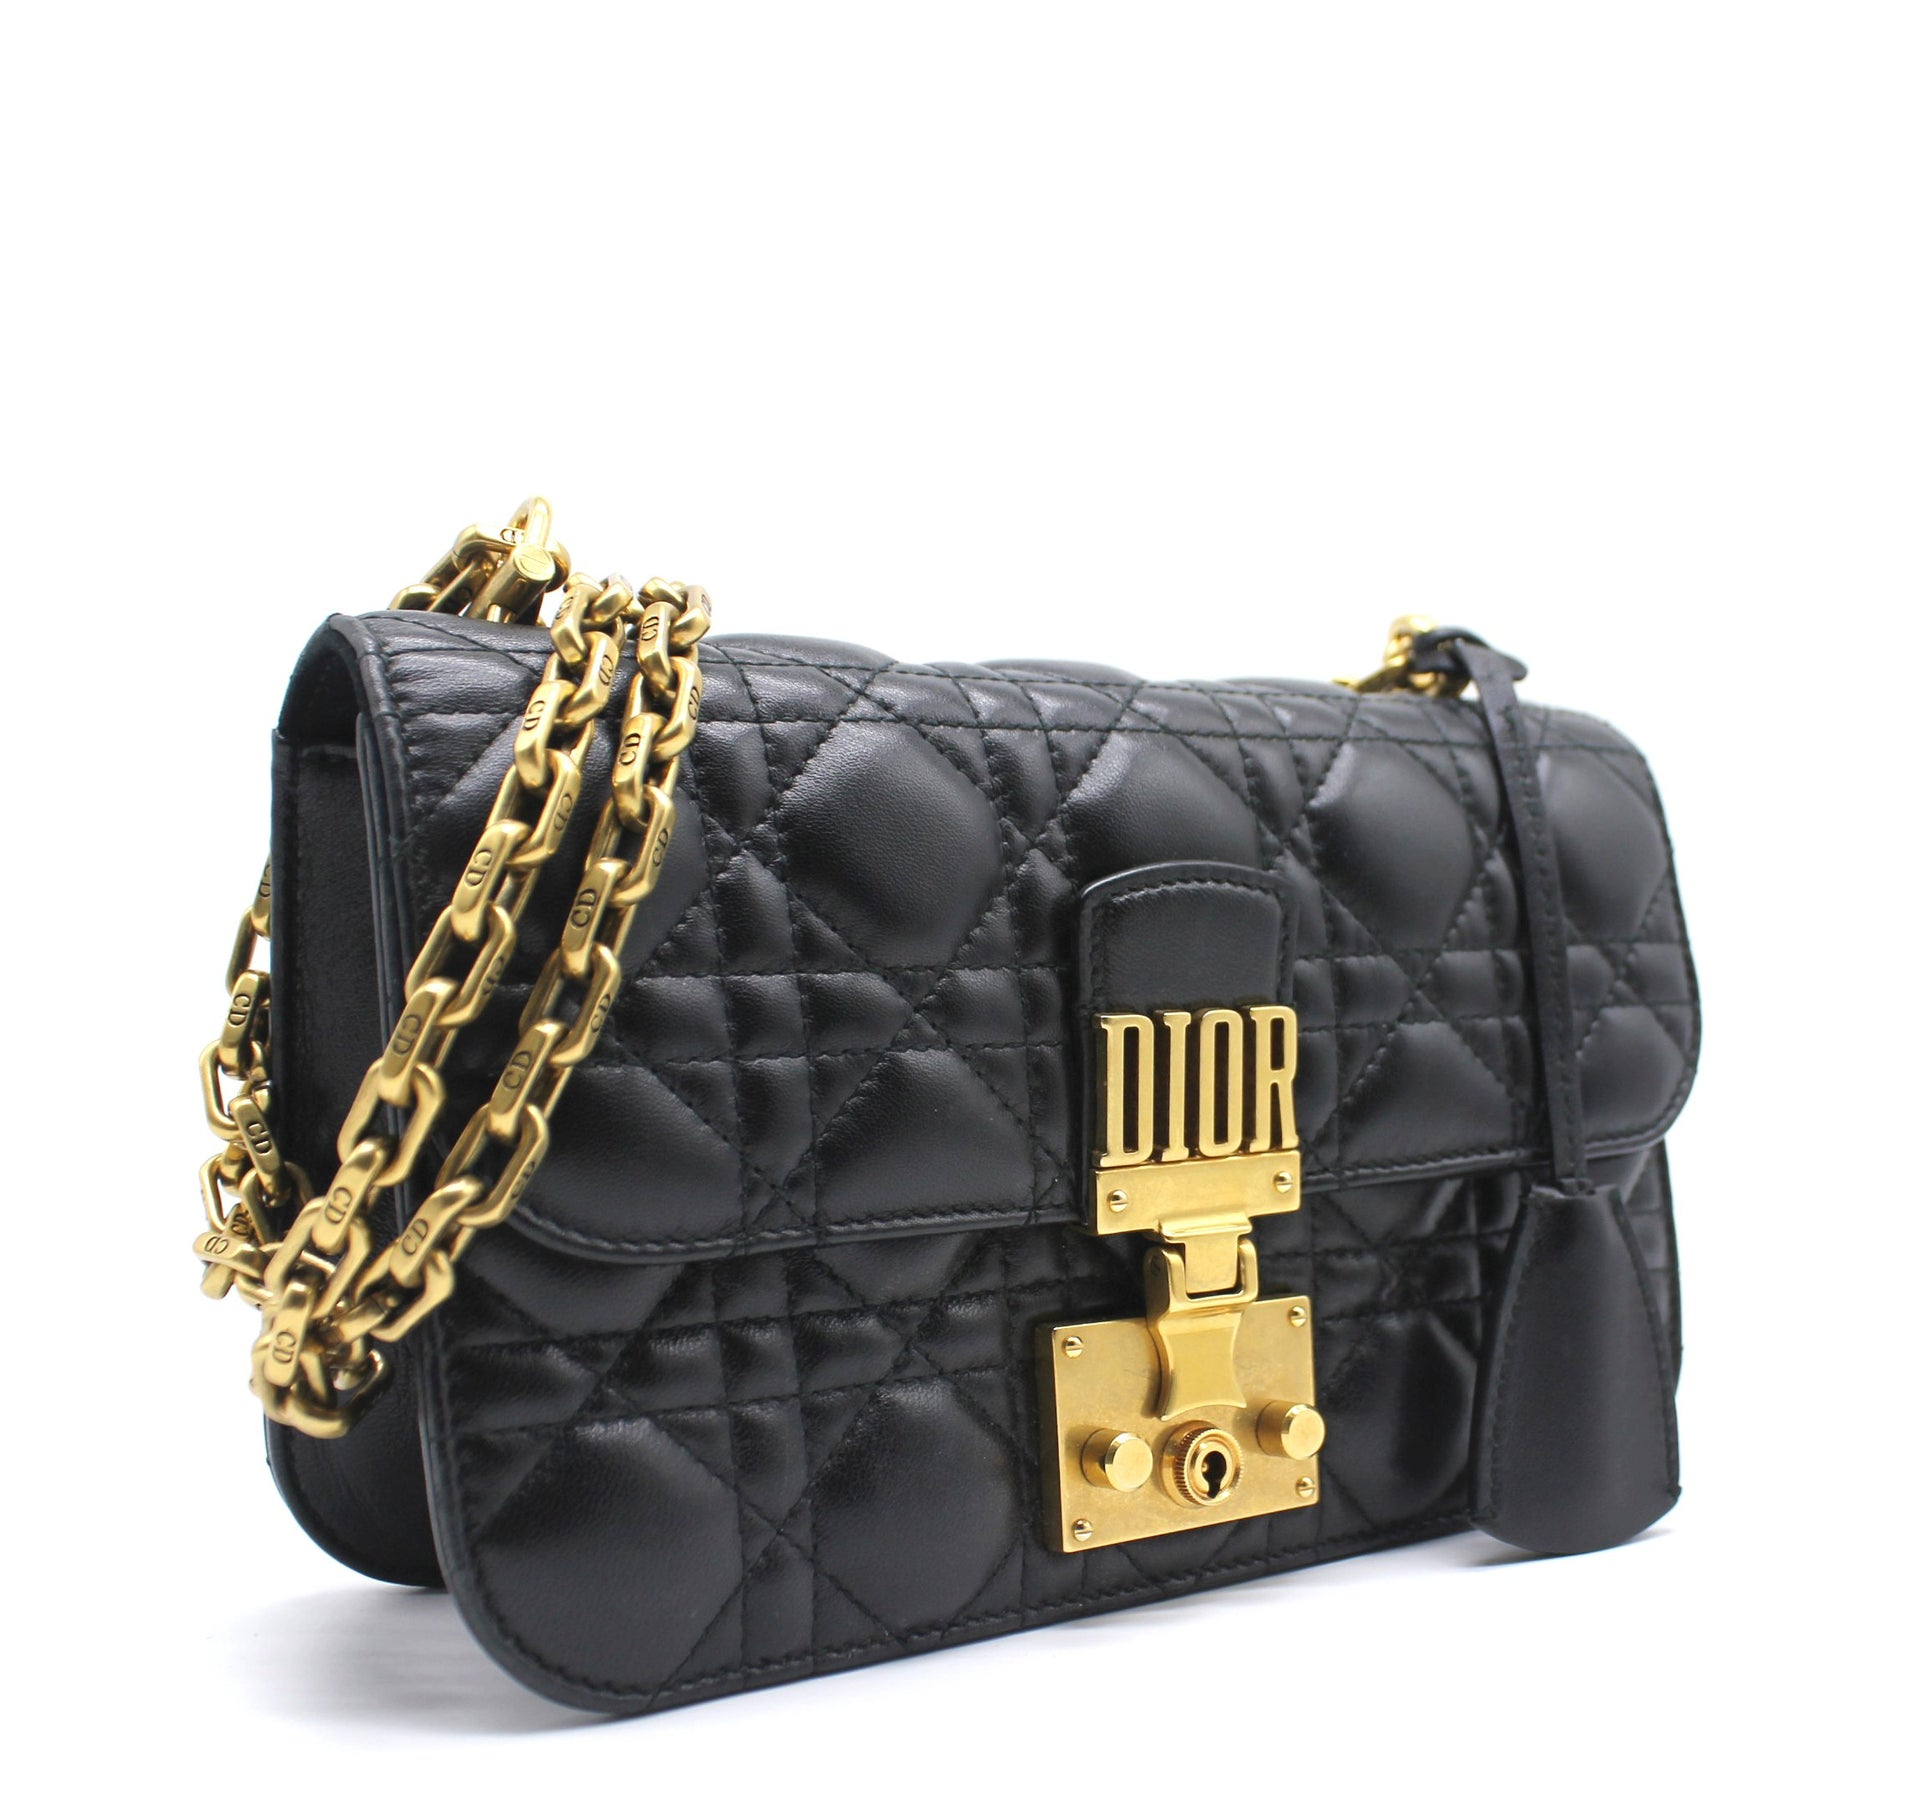 Christian Dior Dioraddcit Small Flap Bag in Black Lambskin